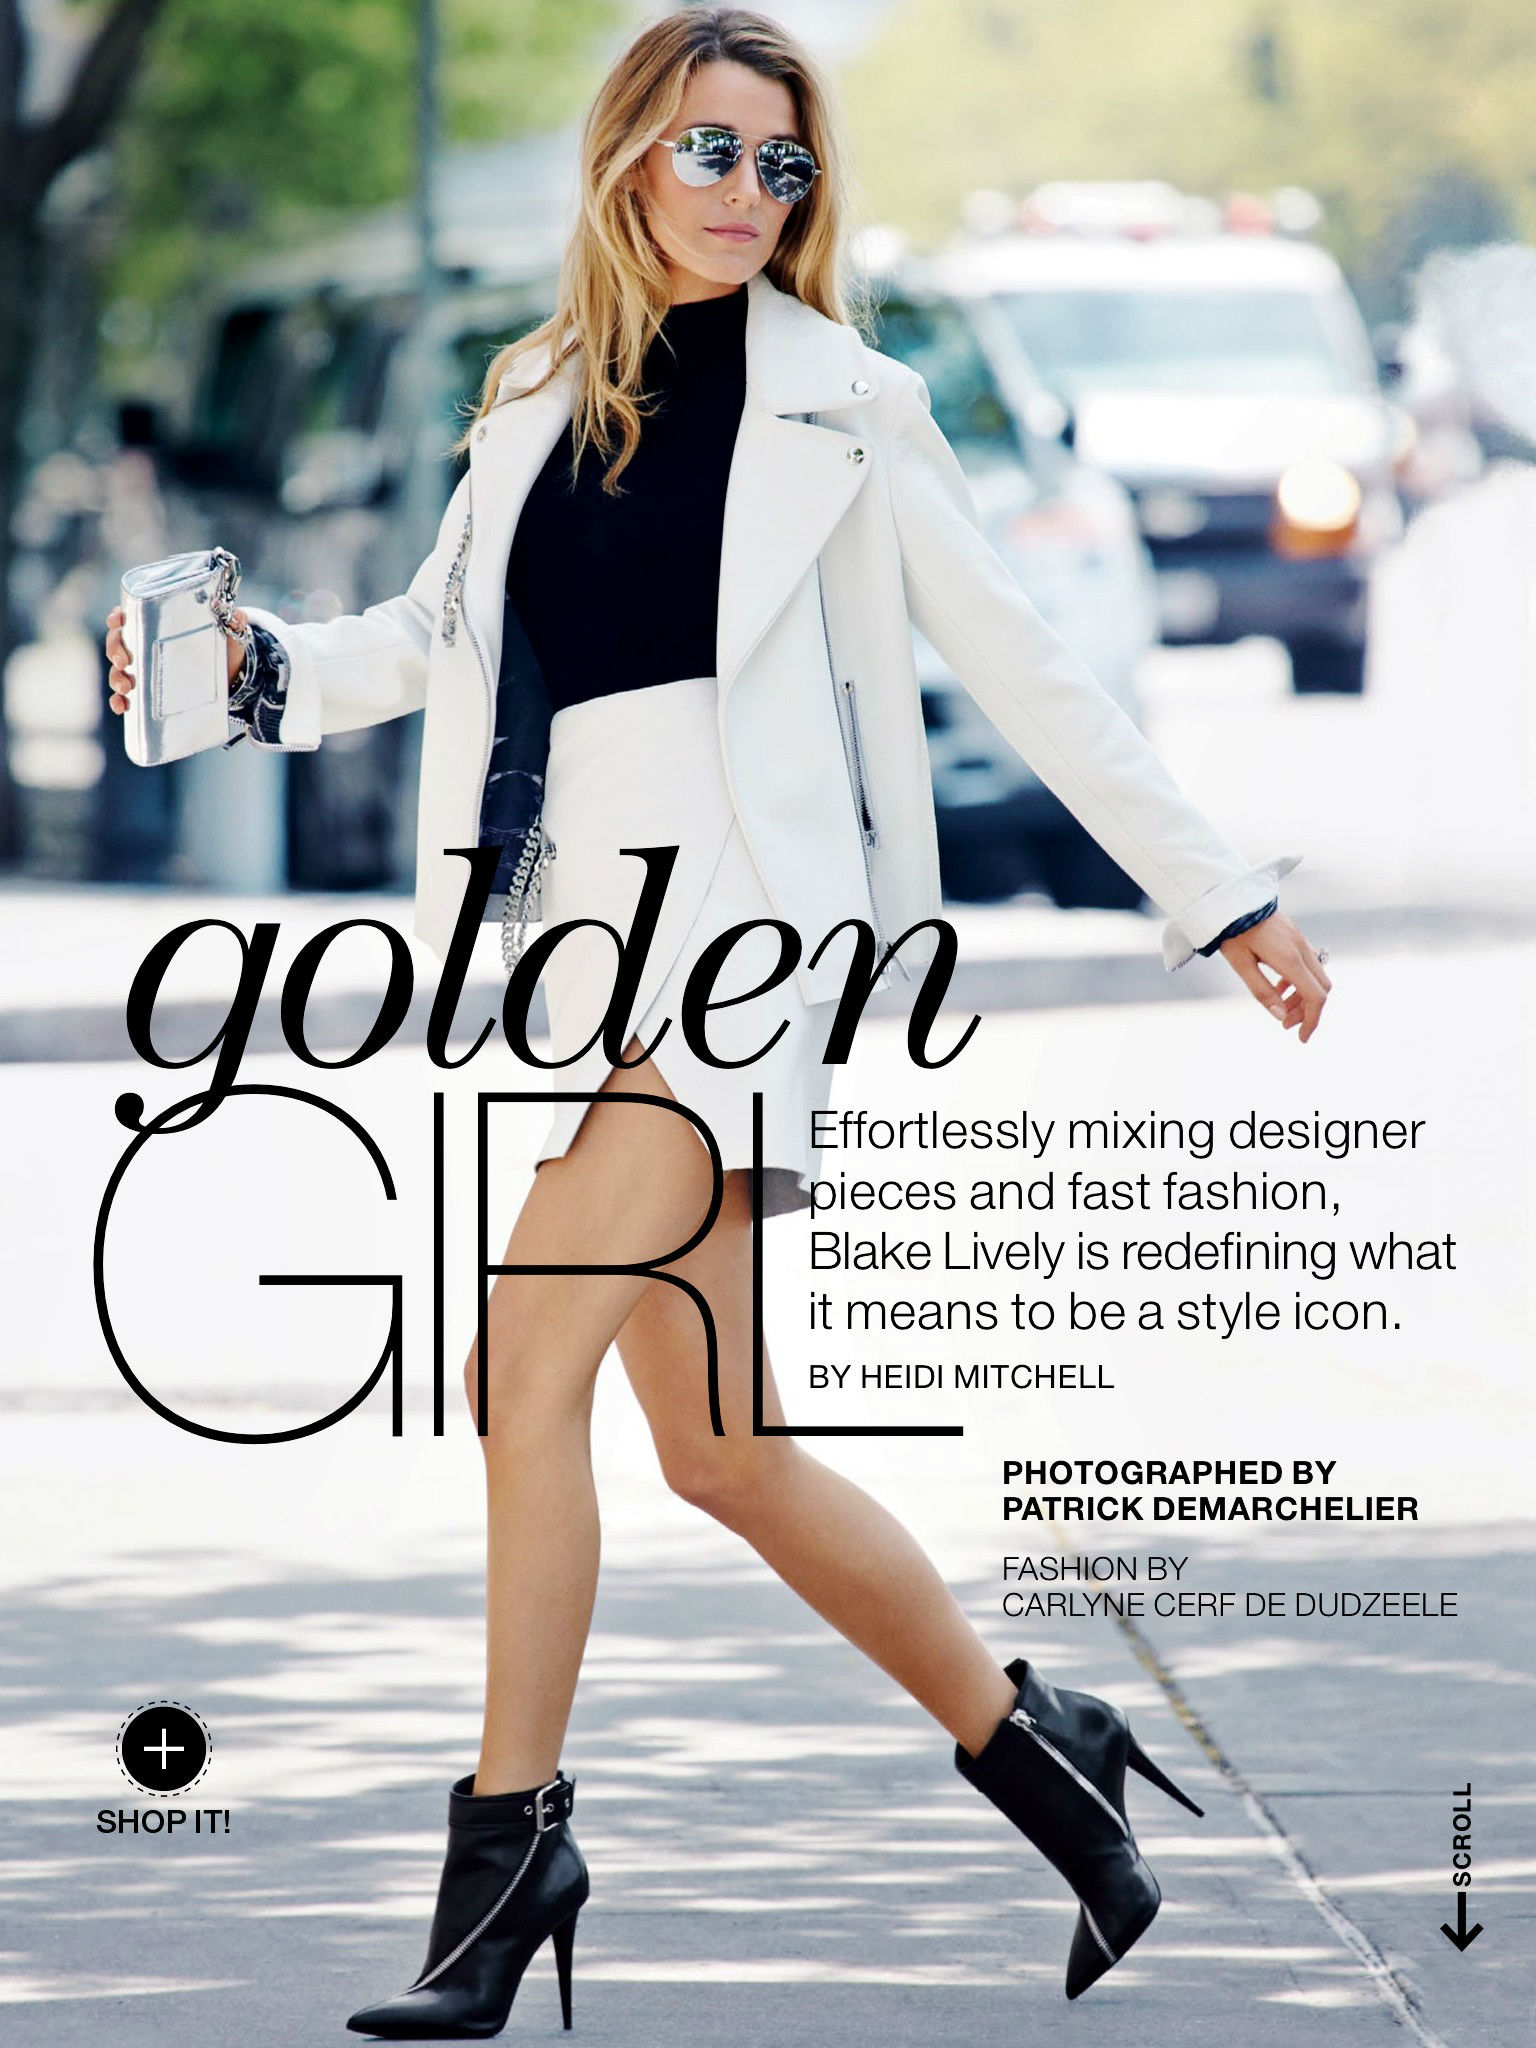 111fashion_scans_remastered-blake_lively-lucky-september_2013-scanned_by_vampirehorde-hq-2